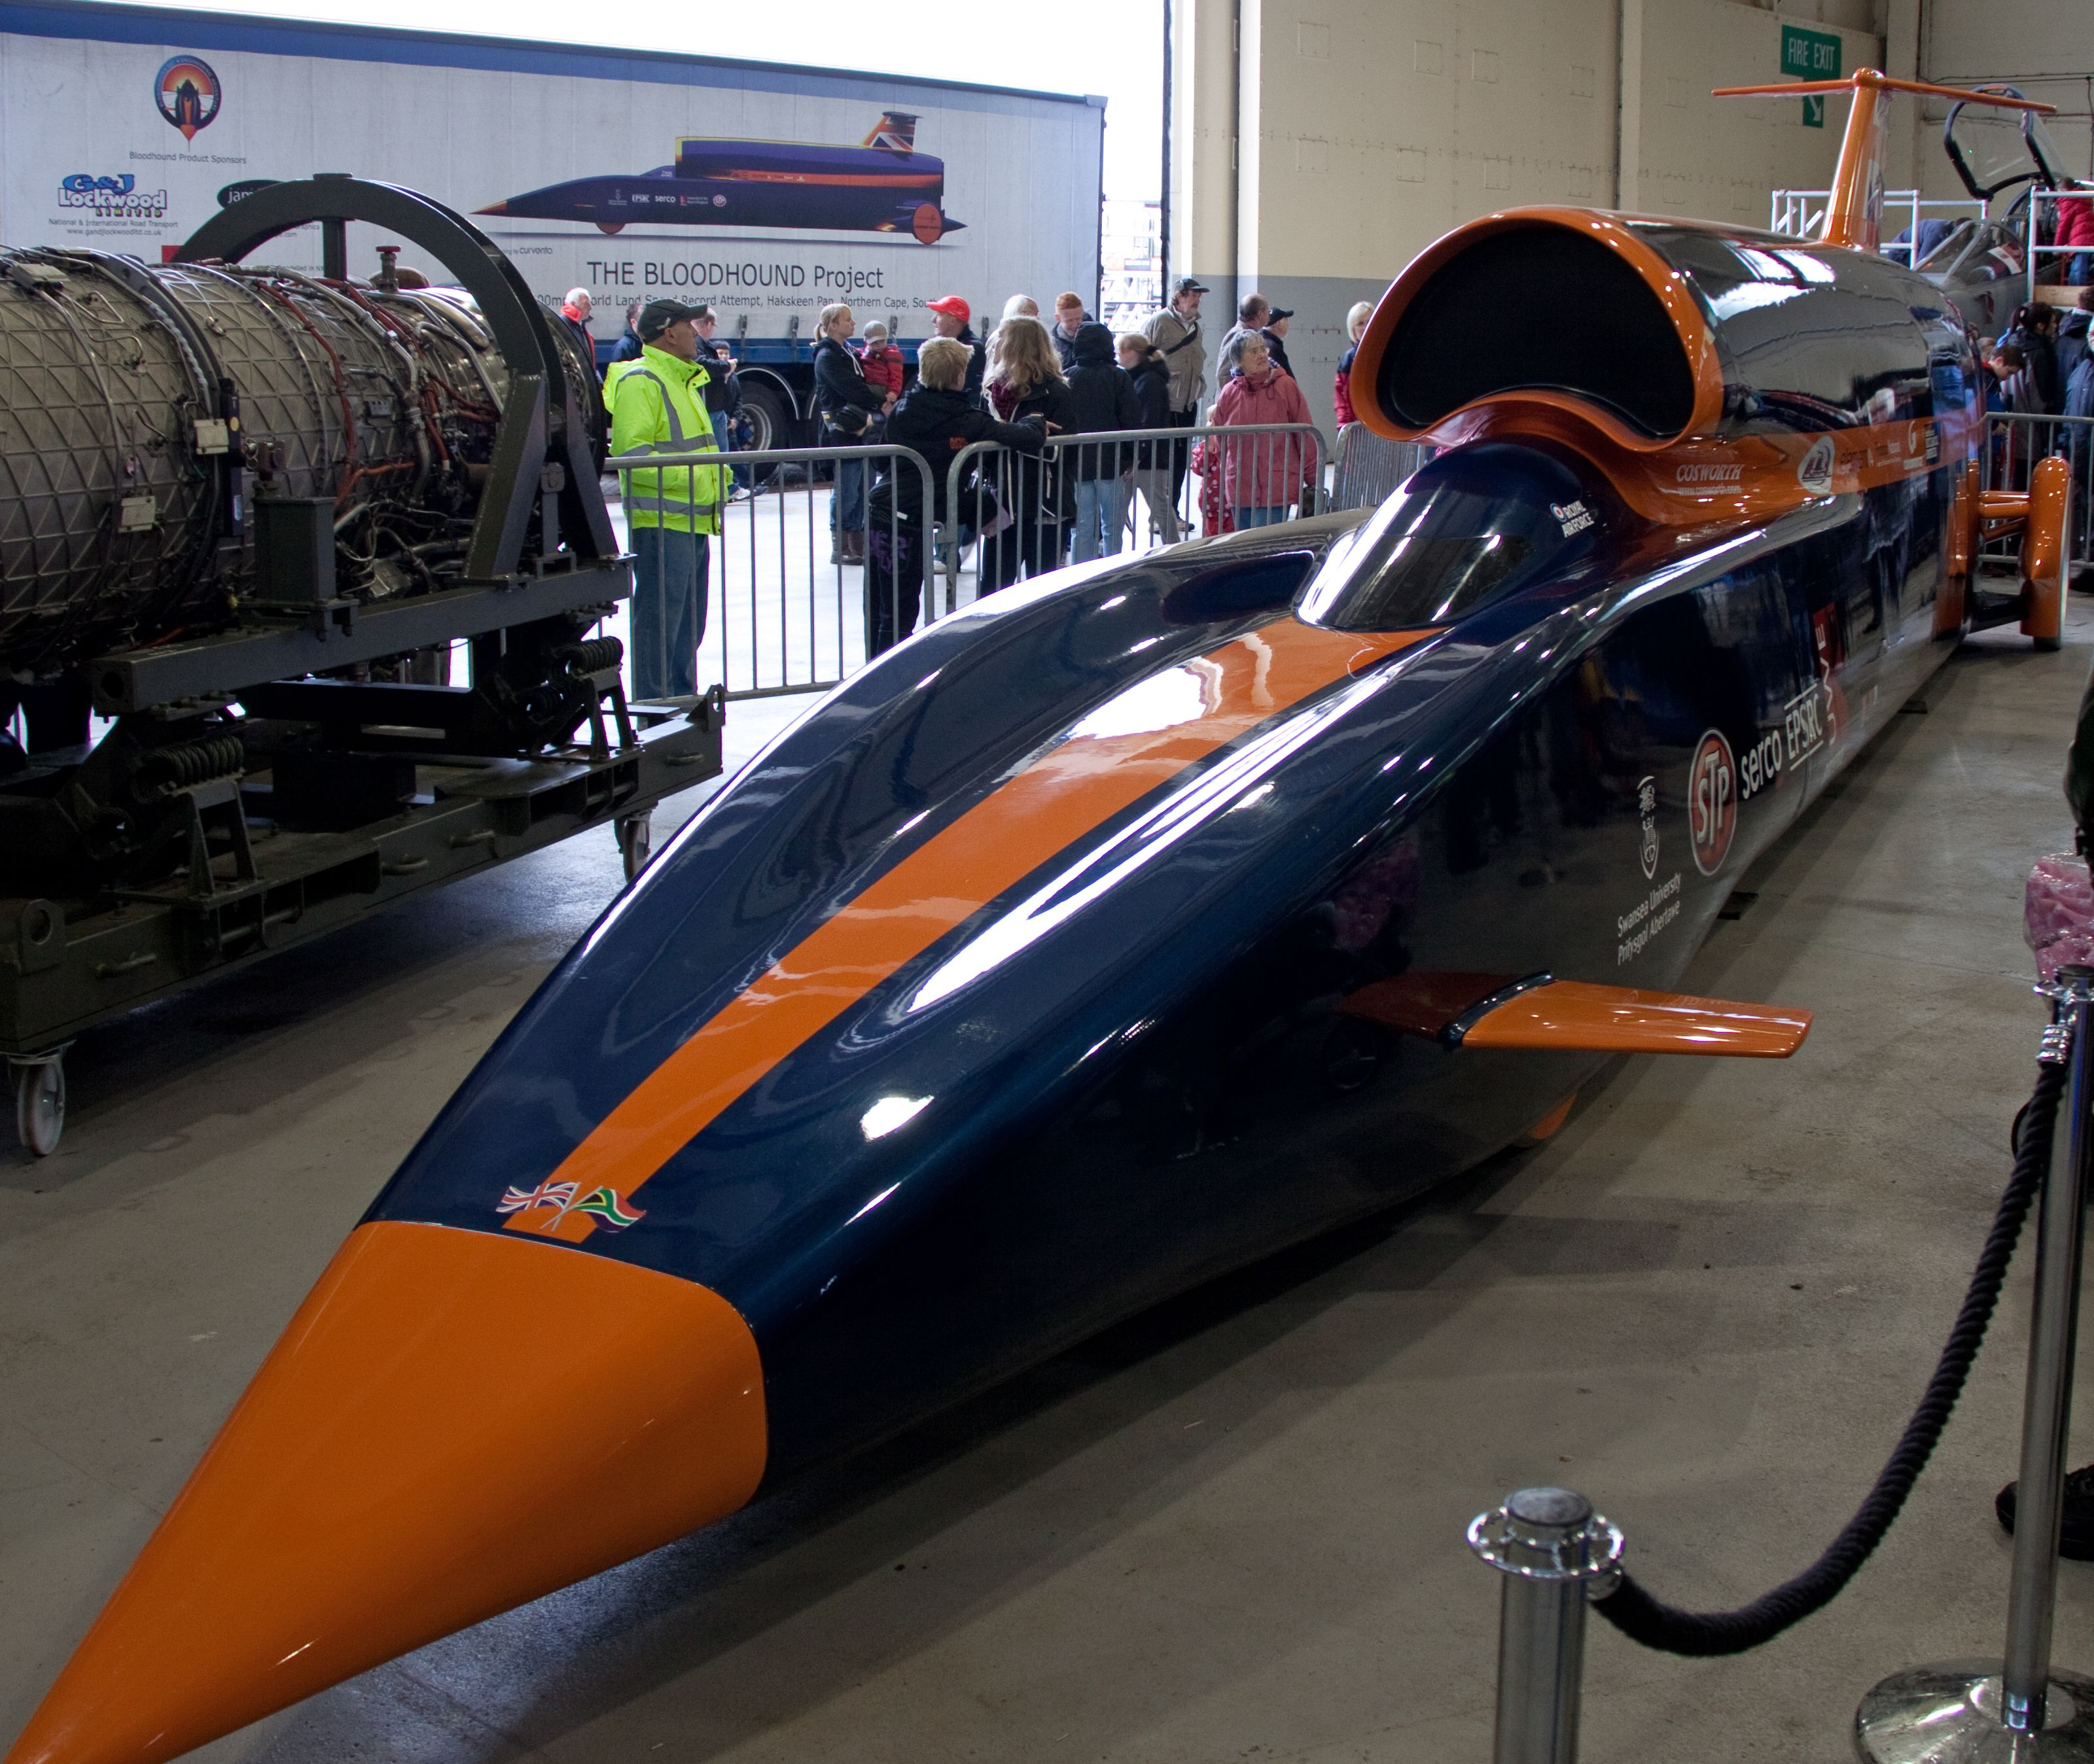 The BLOODHOUND Project Is The Name Of An International